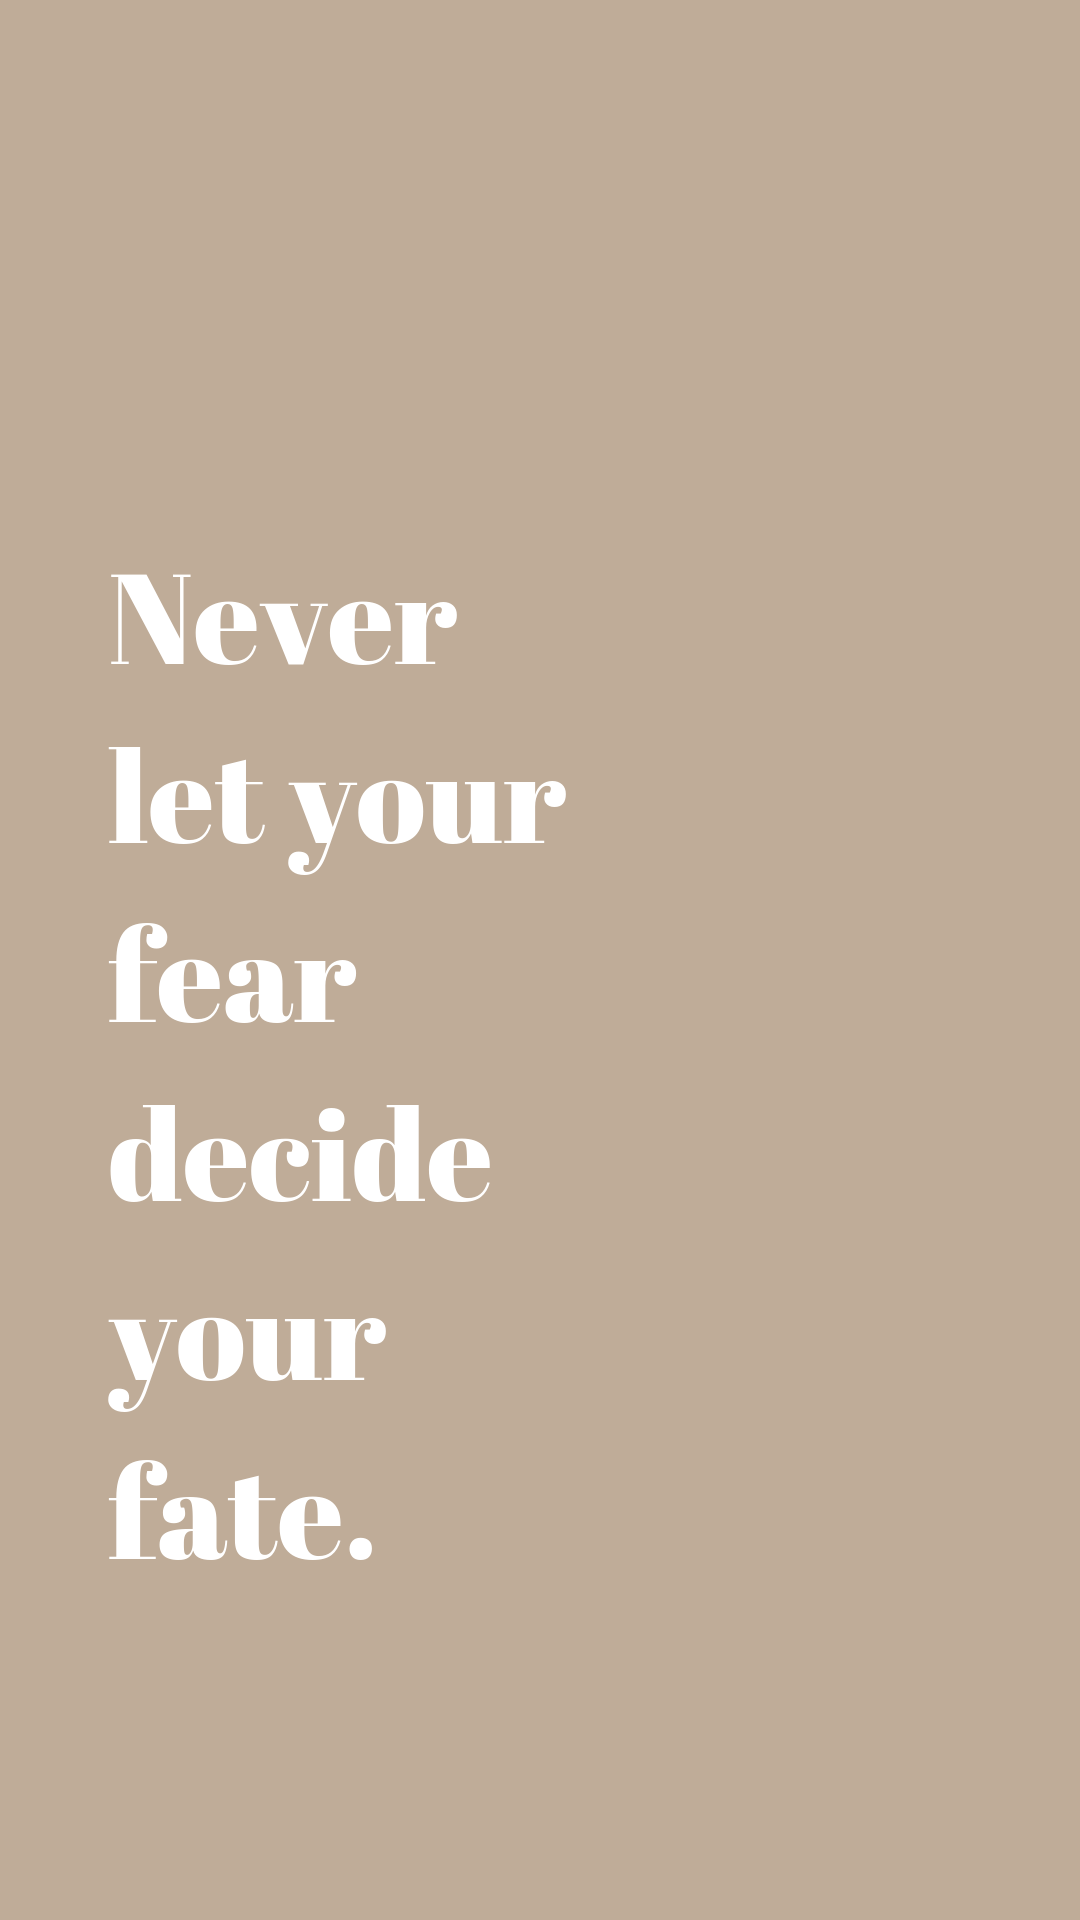 Never let your fear decide your fate | Motivational, inspiring quotes for your phone screen background | Miranda Schroeder Blog